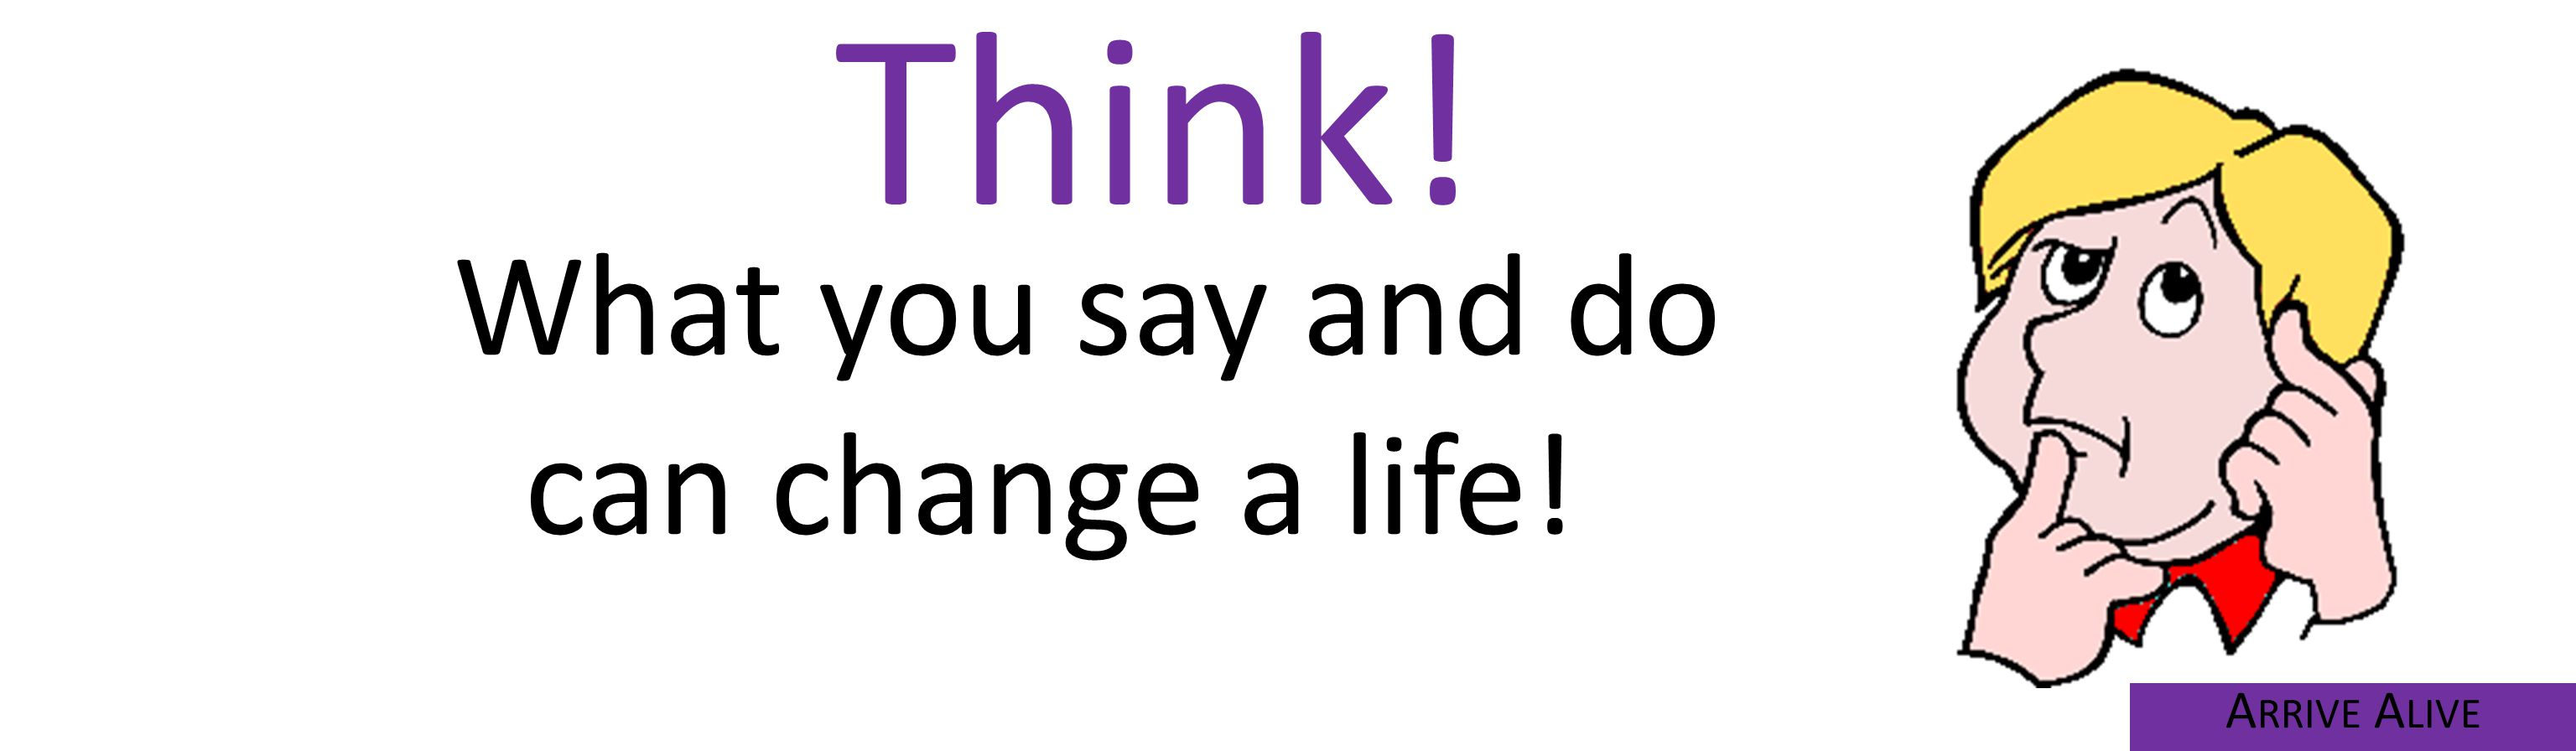 Think! What you say and do can change a life! A RRIVE A LIVE